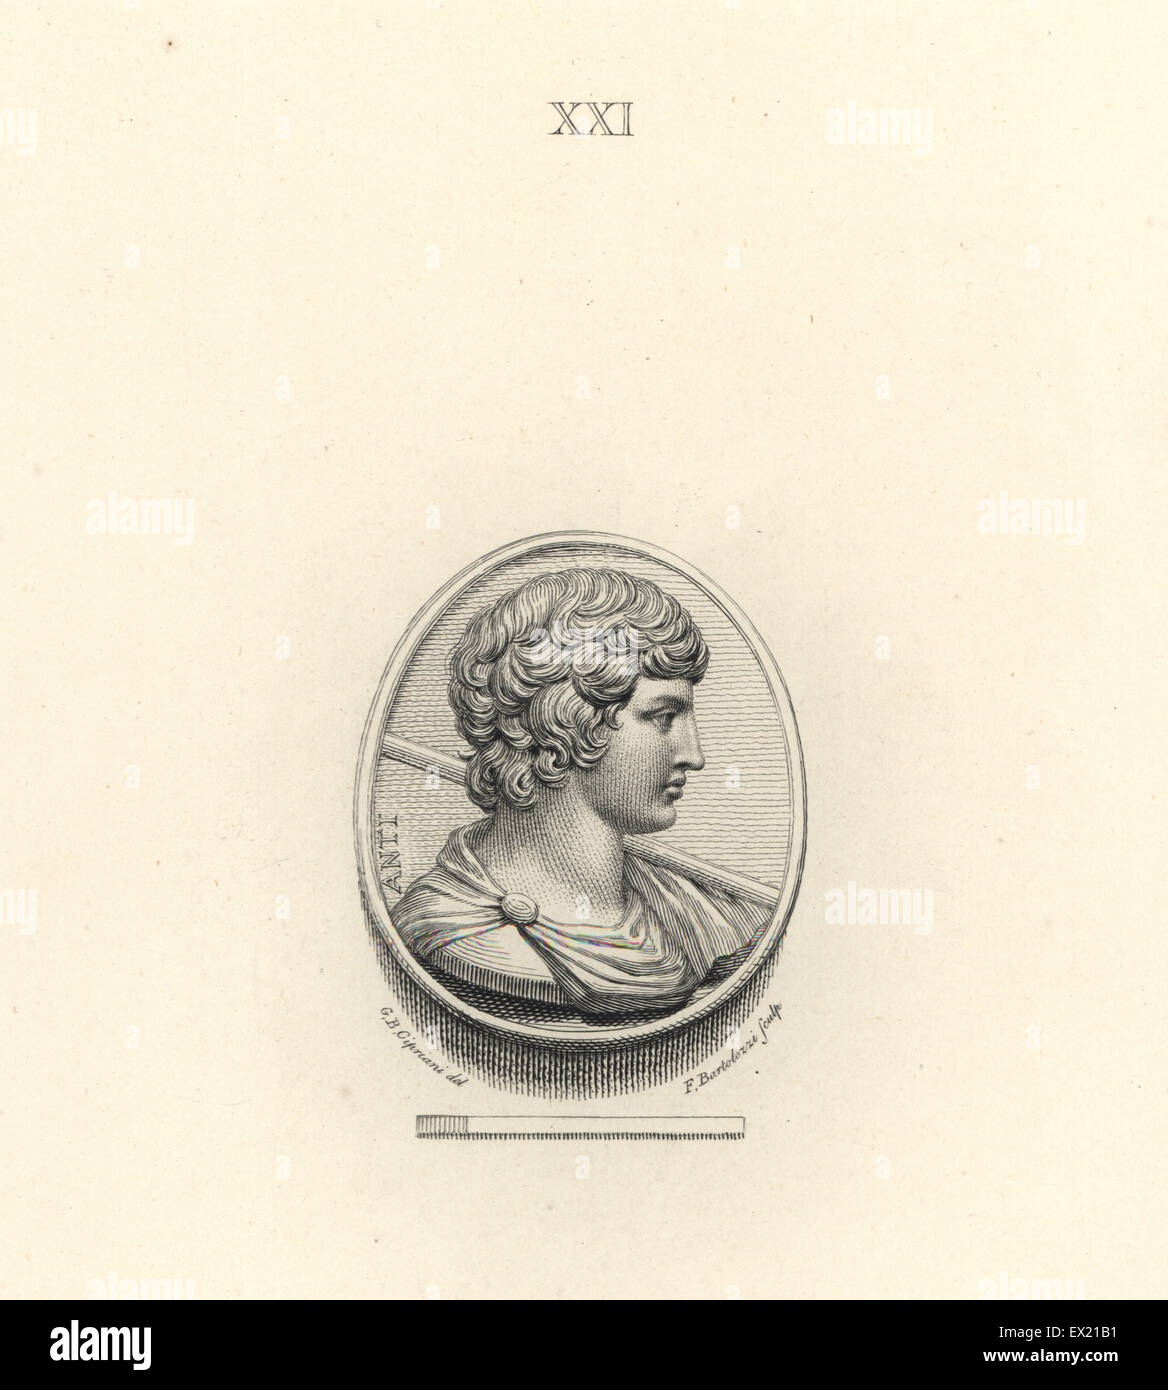 Antinous, Bithynian Greek youth and lover of the Roman emperor Hadrian. Copperplate engraving by Francesco Bartolozzi - Stock Image